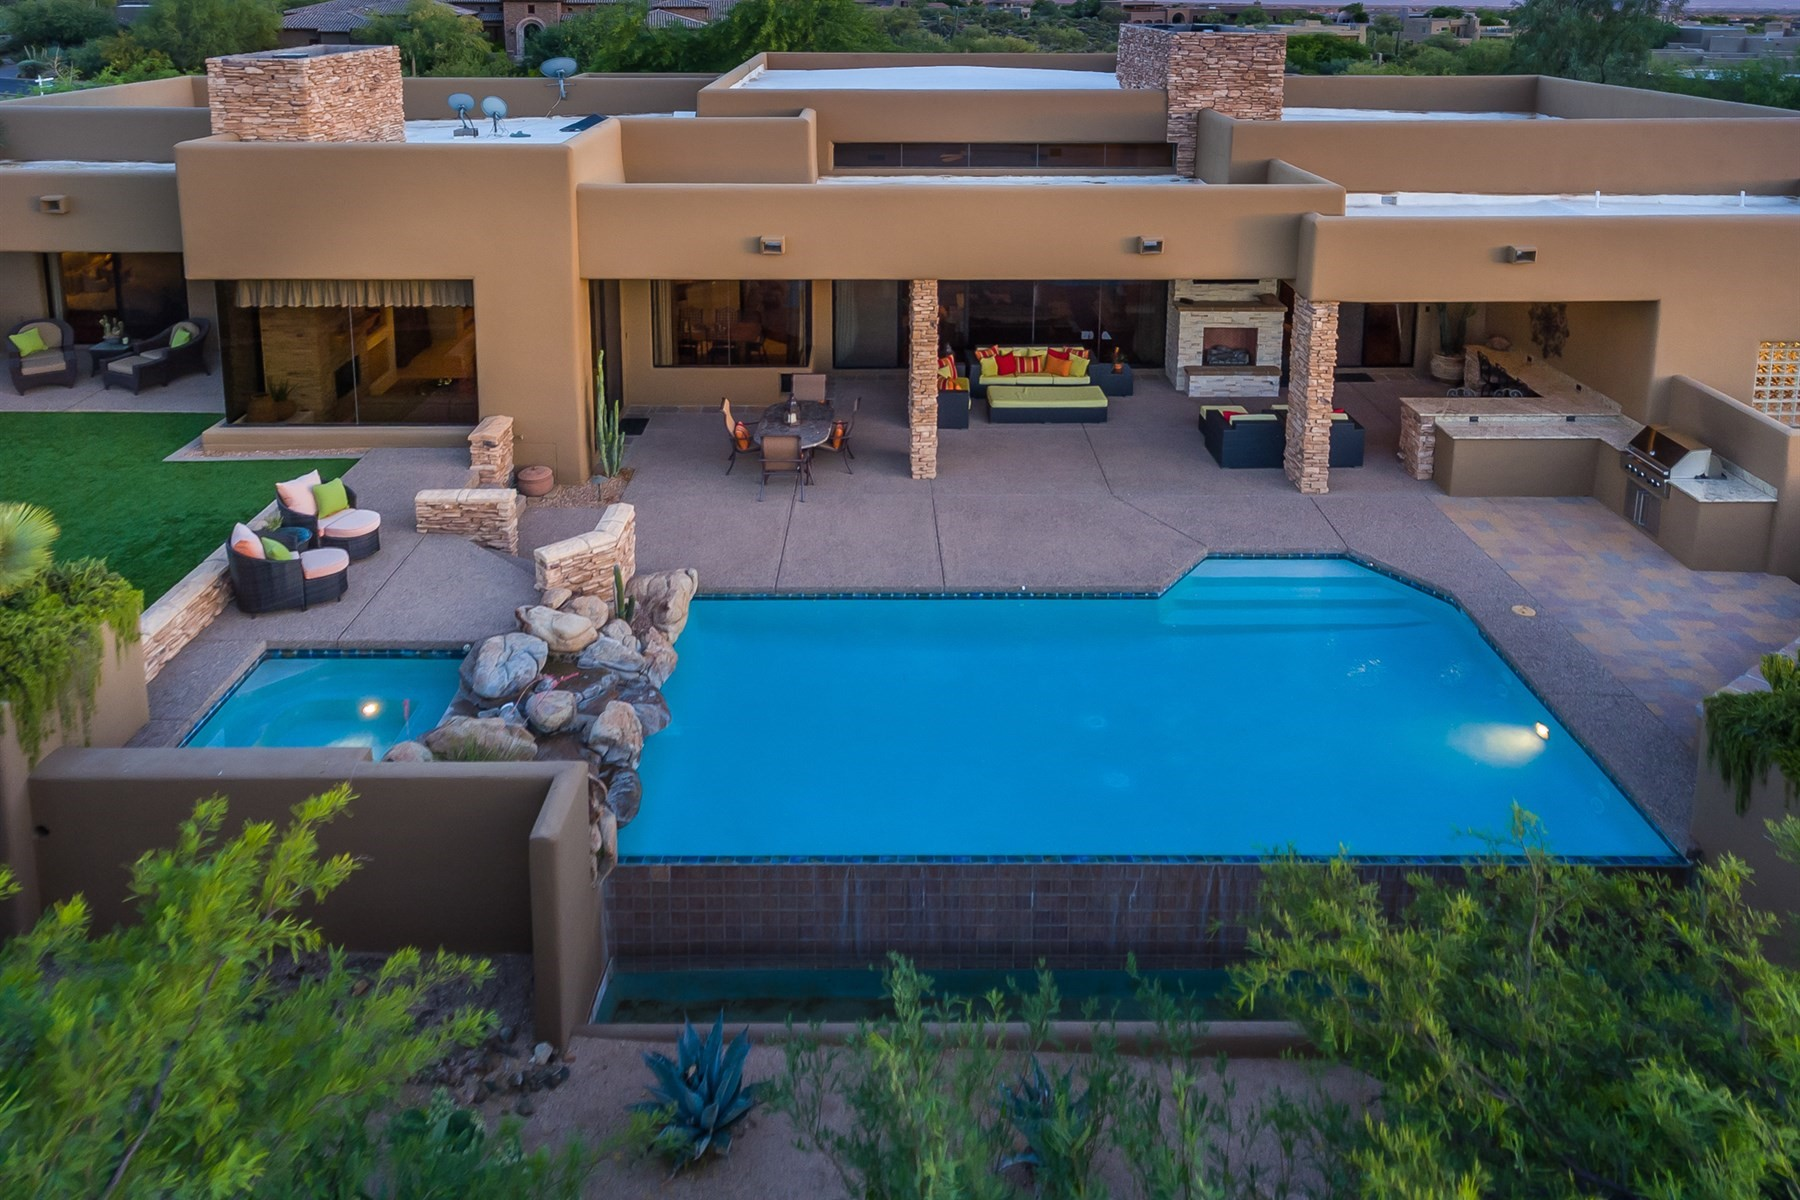 Single Family Home for Sale at Soft Contemporary home in Desert Mountain 10328 E Rising Sun Dr, Scottsdale, Arizona, 85262 United States